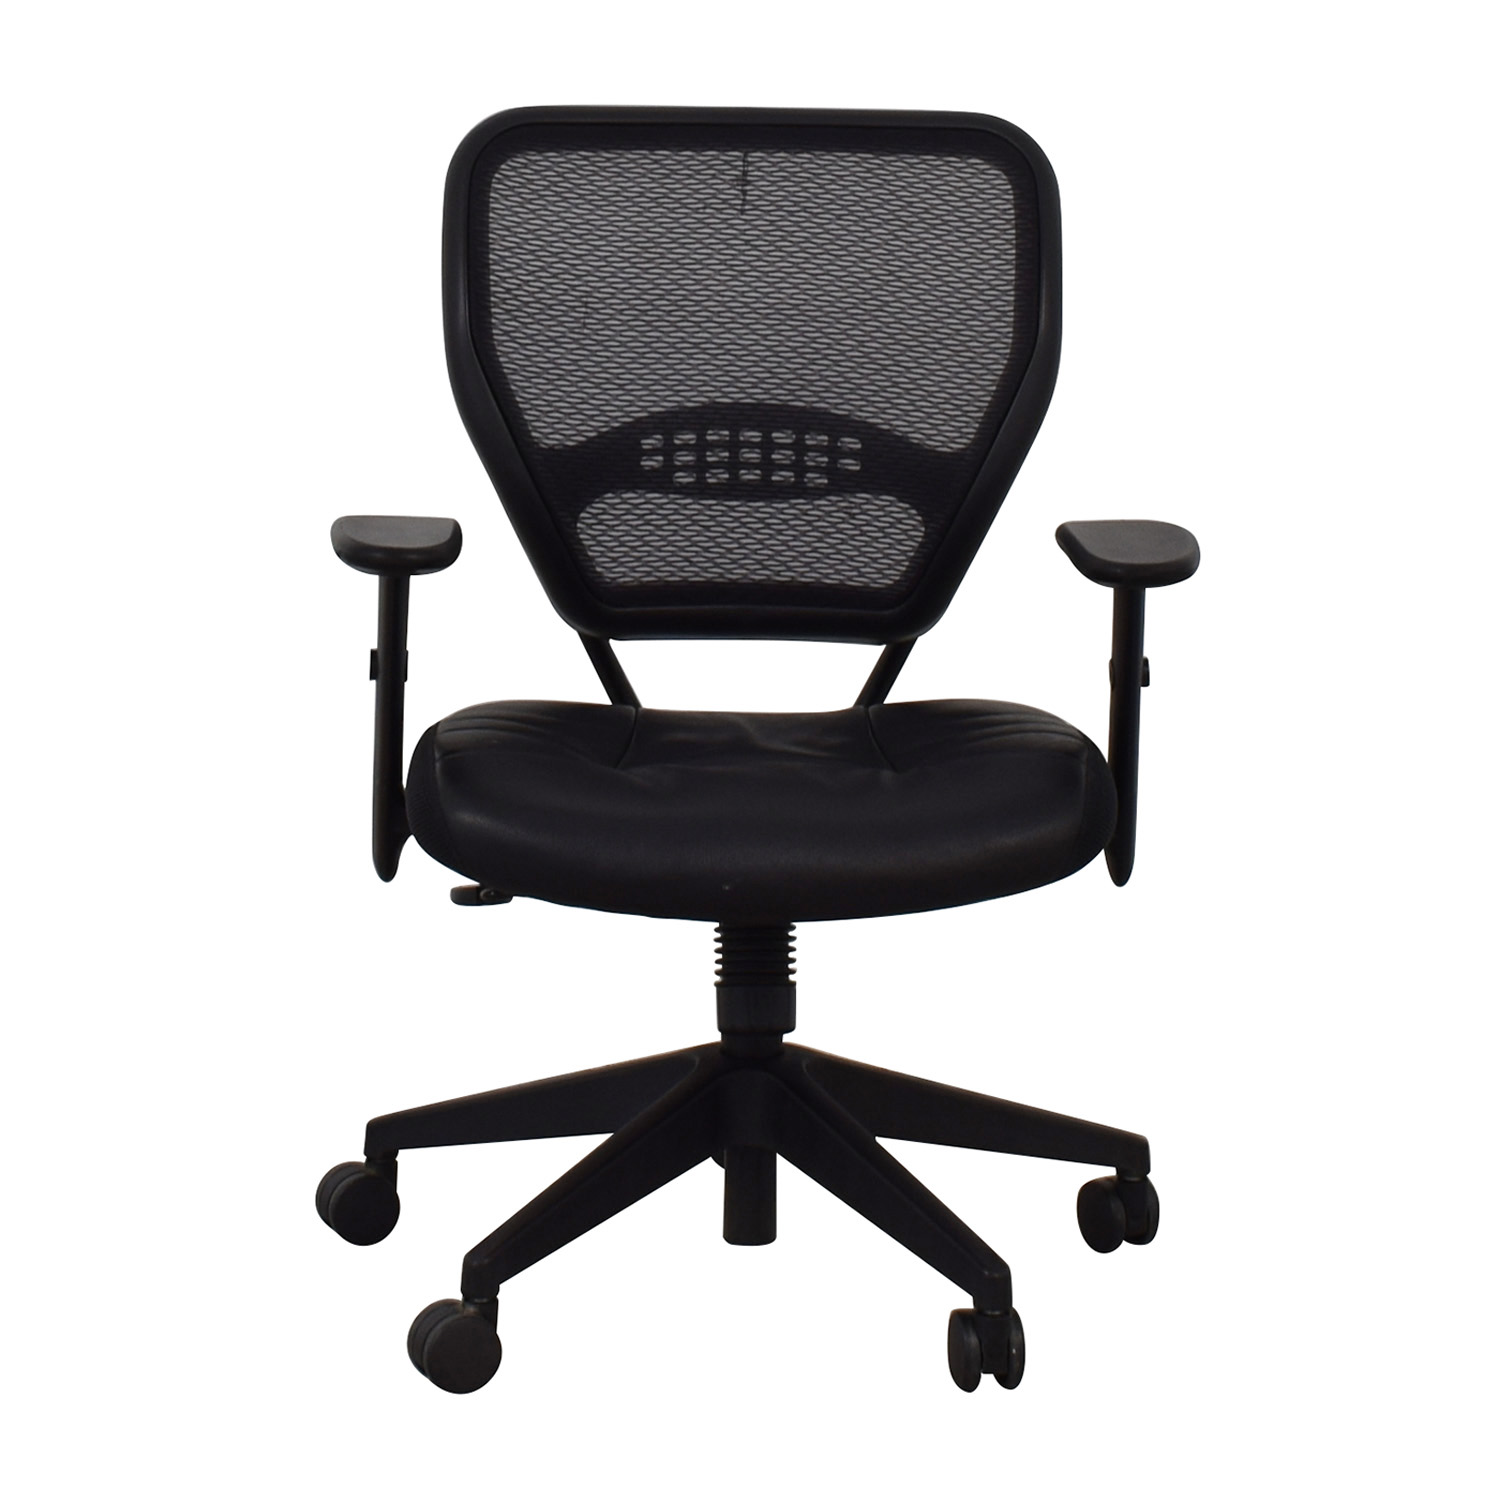 Office Star Office Star Mesh Desk Chair Home Office Chairs